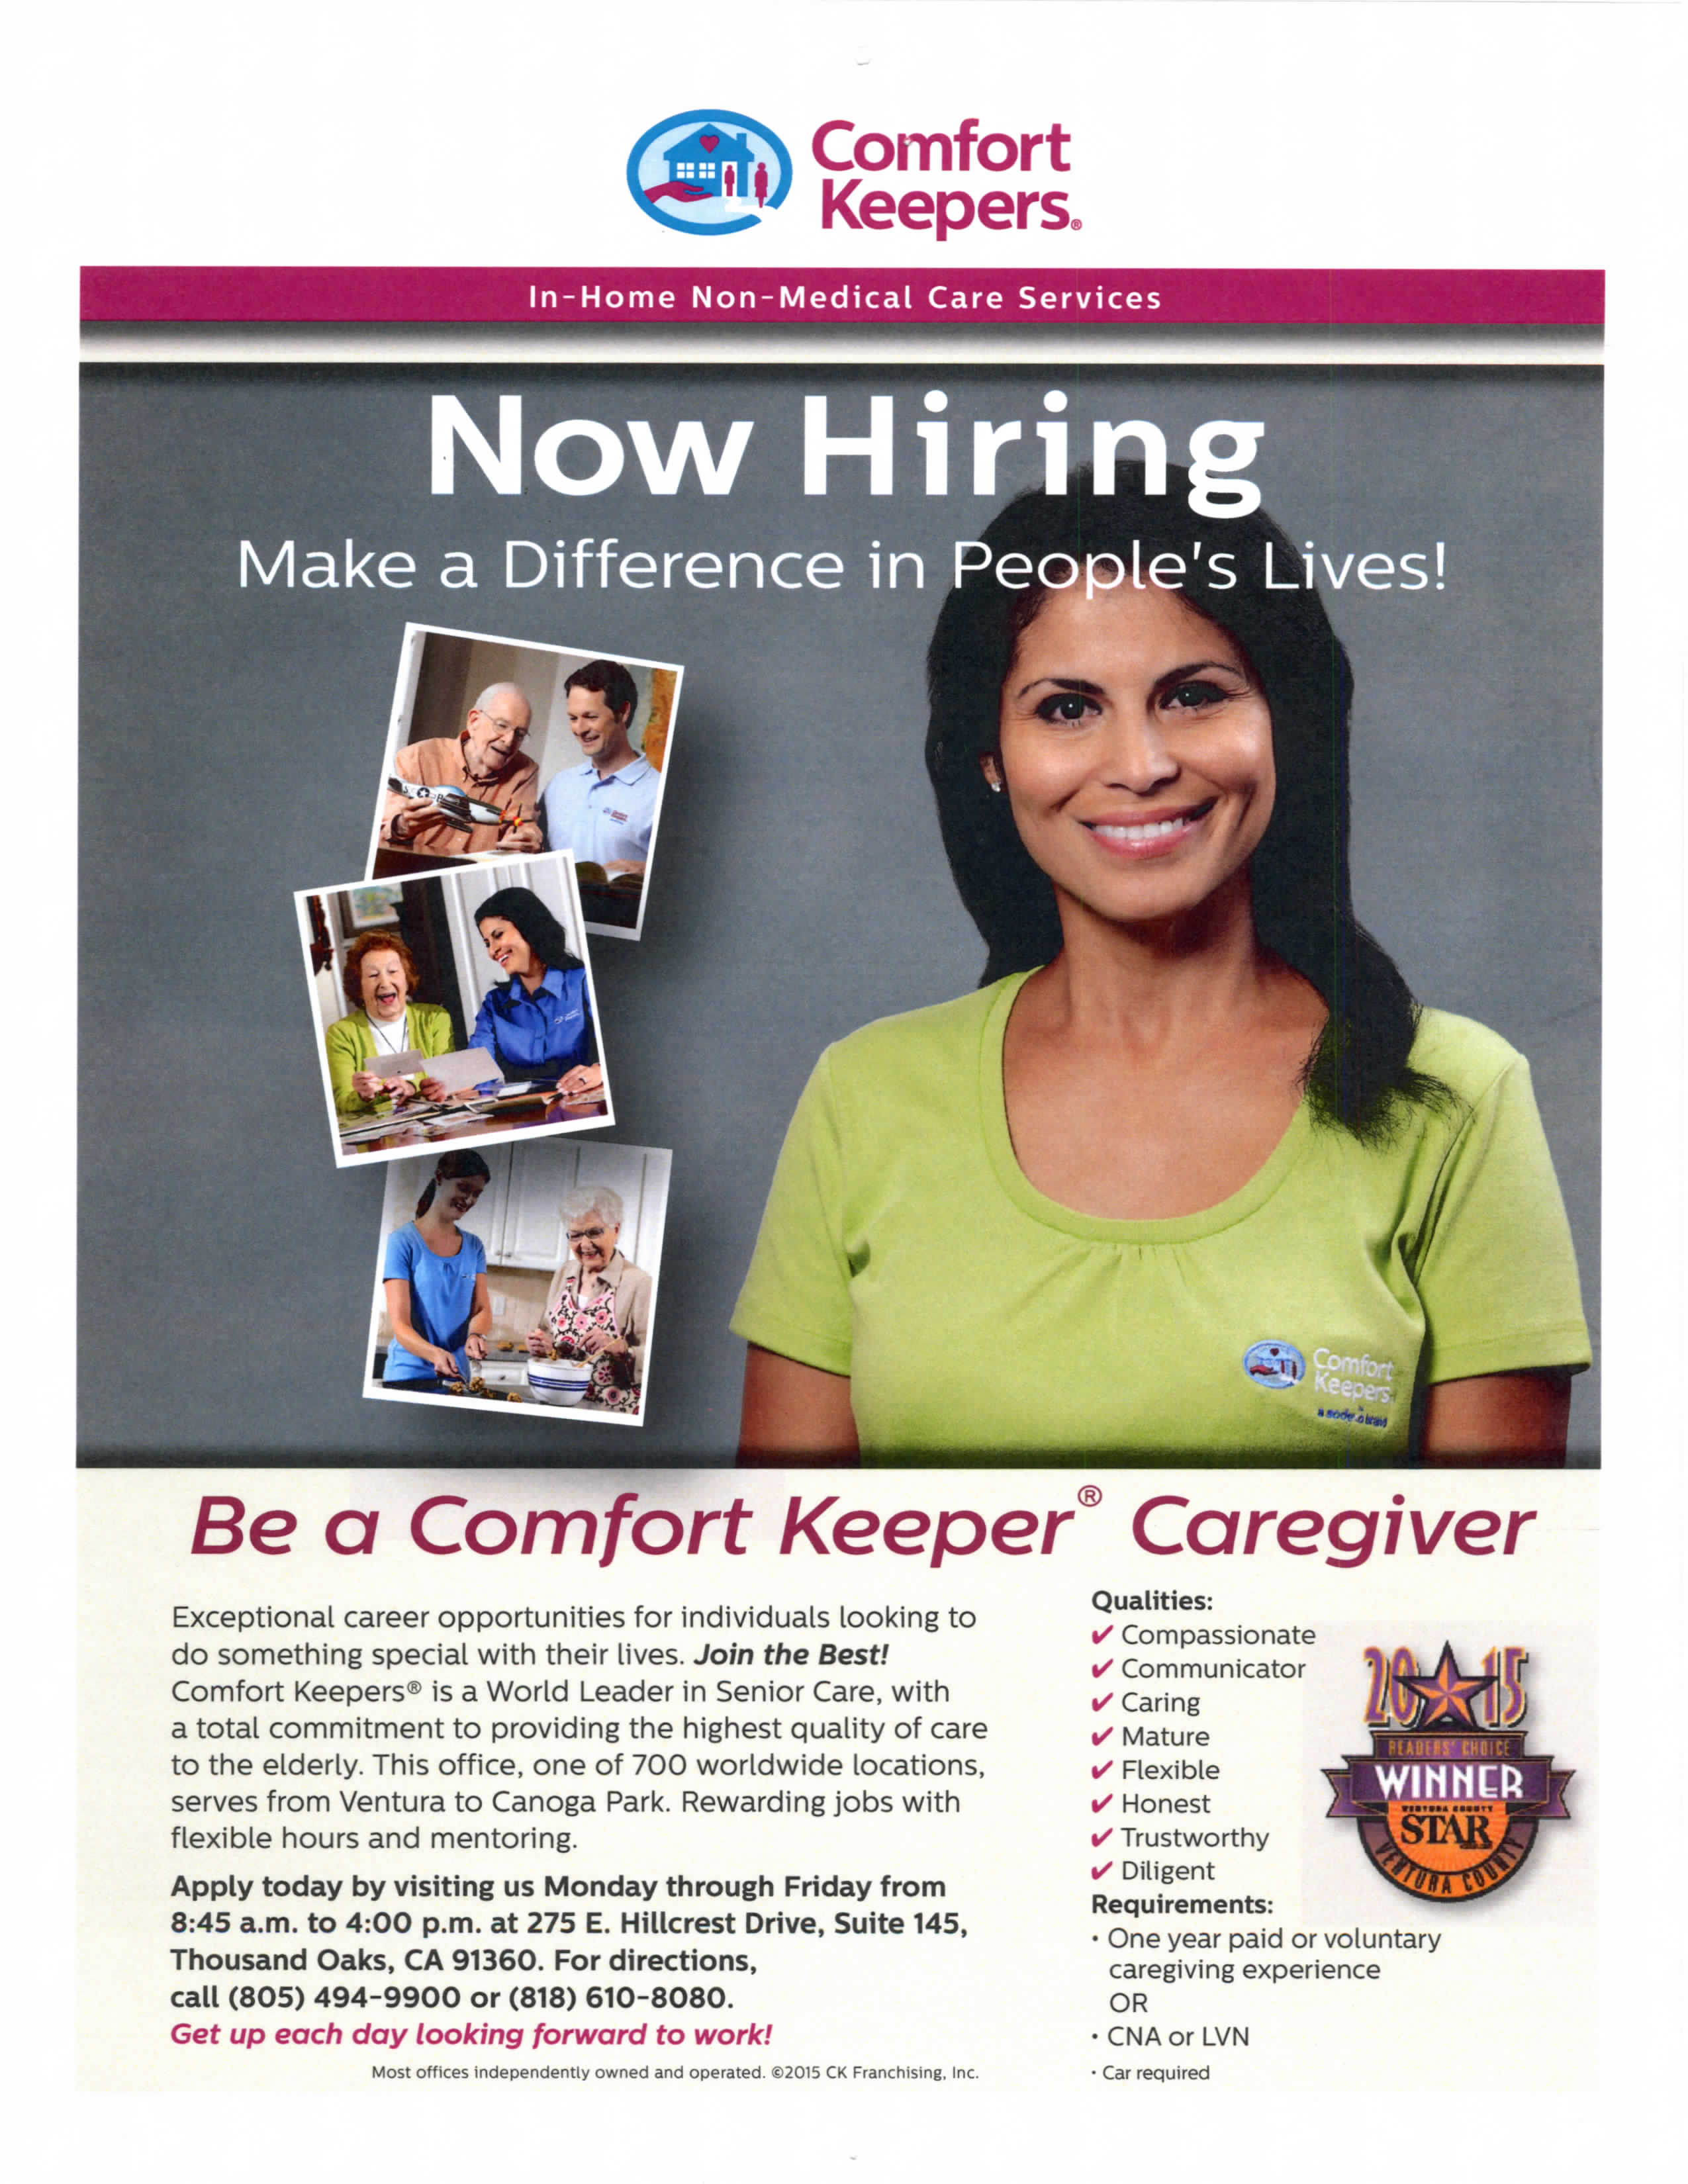 Comfort Keepers Caregivers